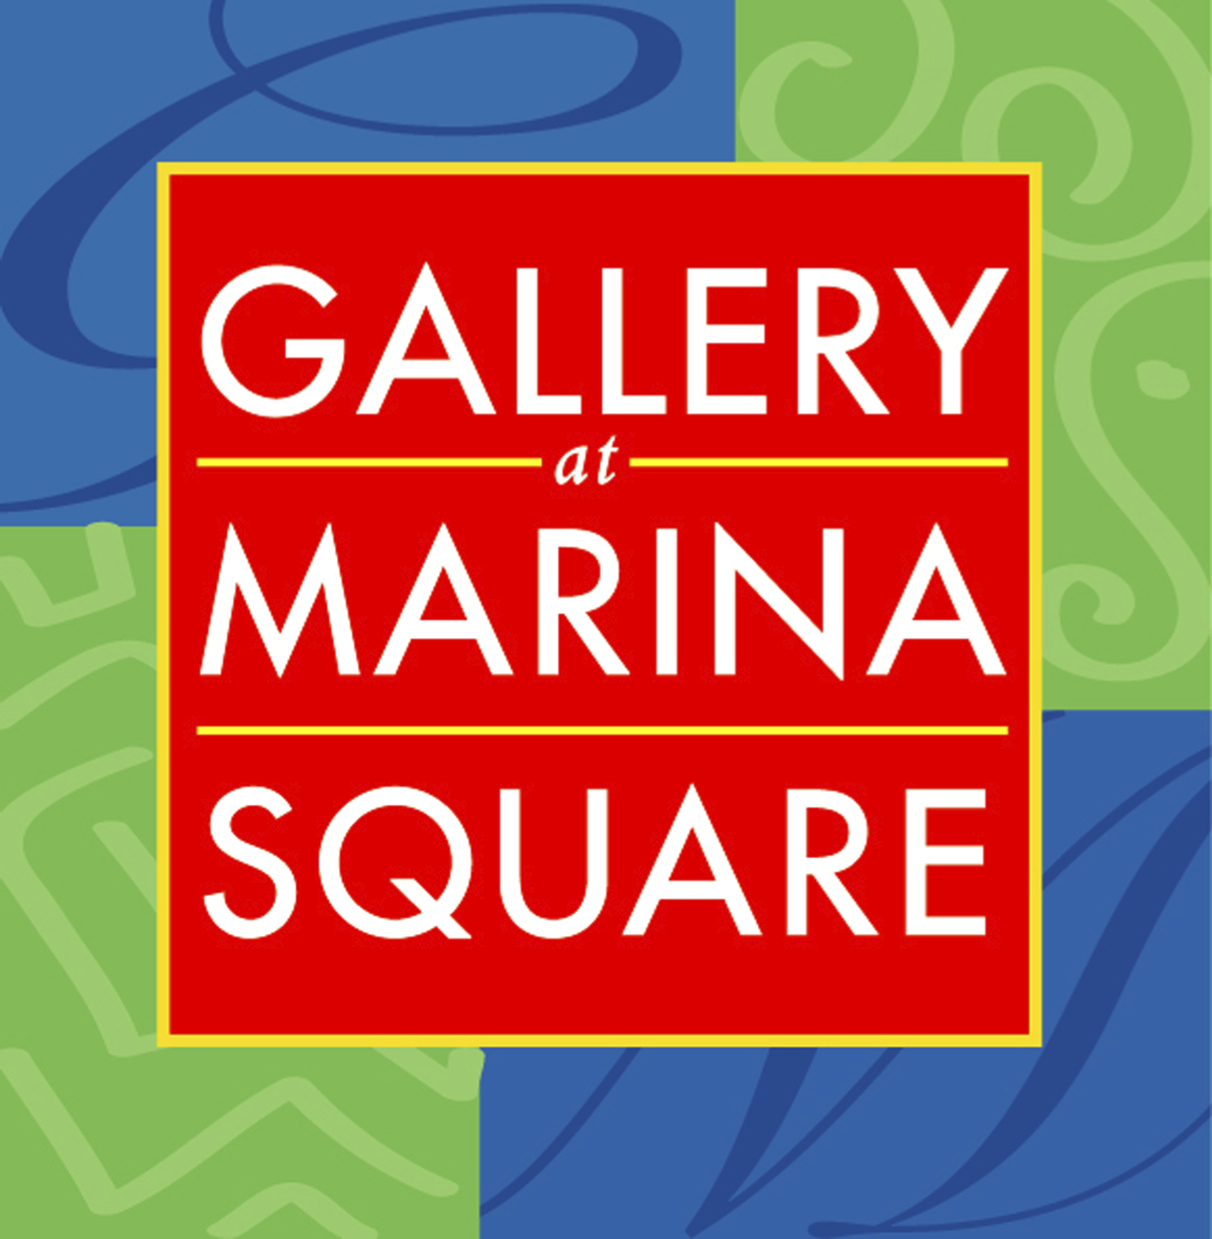 Gallery at Marina Square